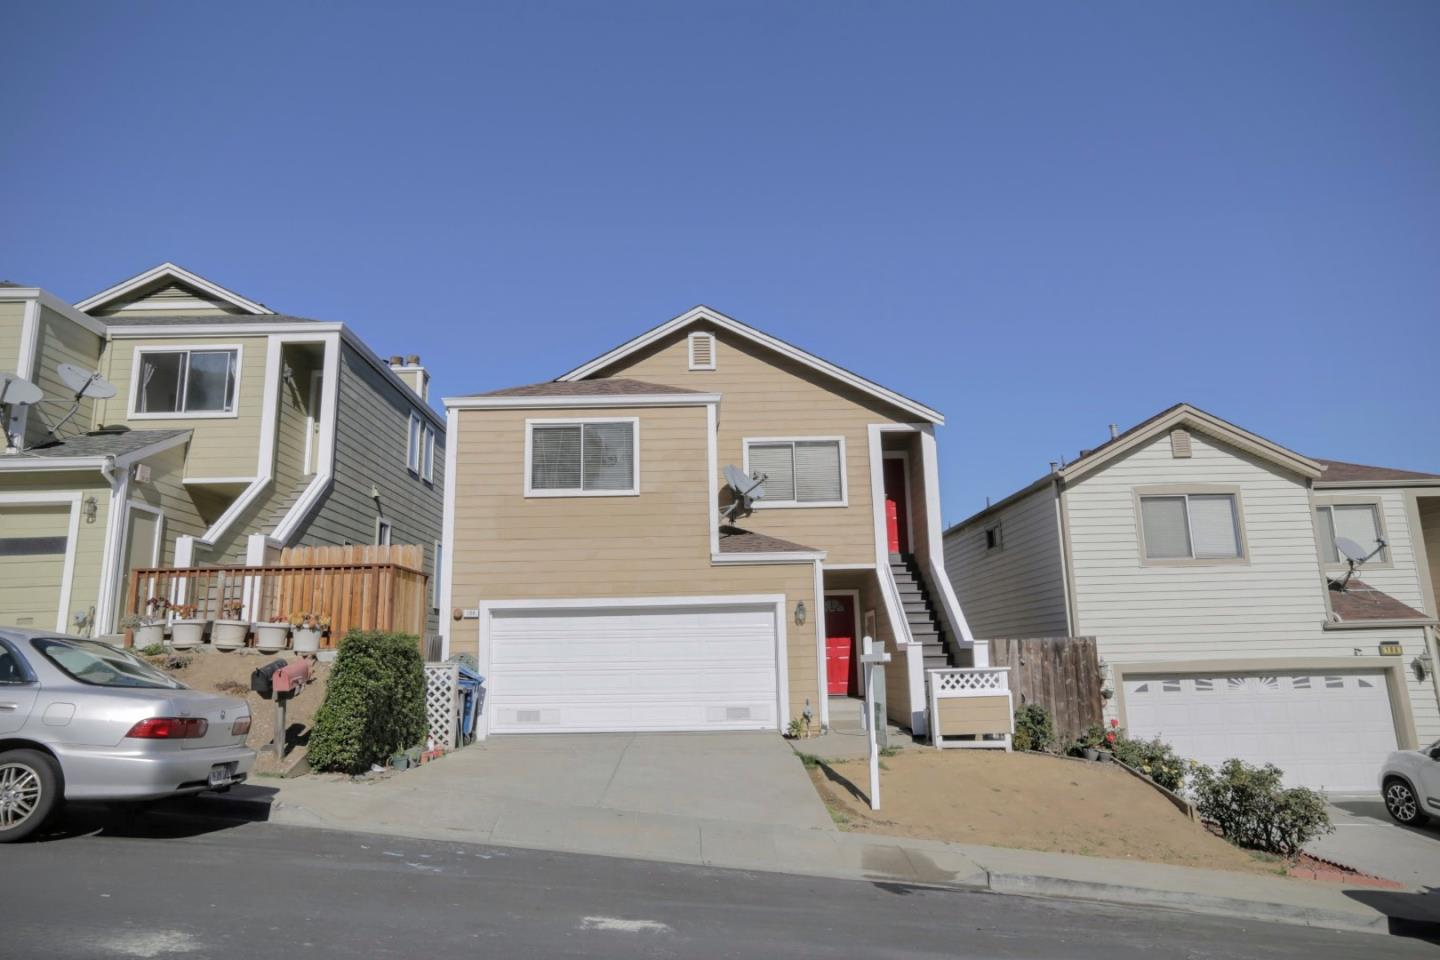 188 Linda Vista Dr, Daly City, CA 94014